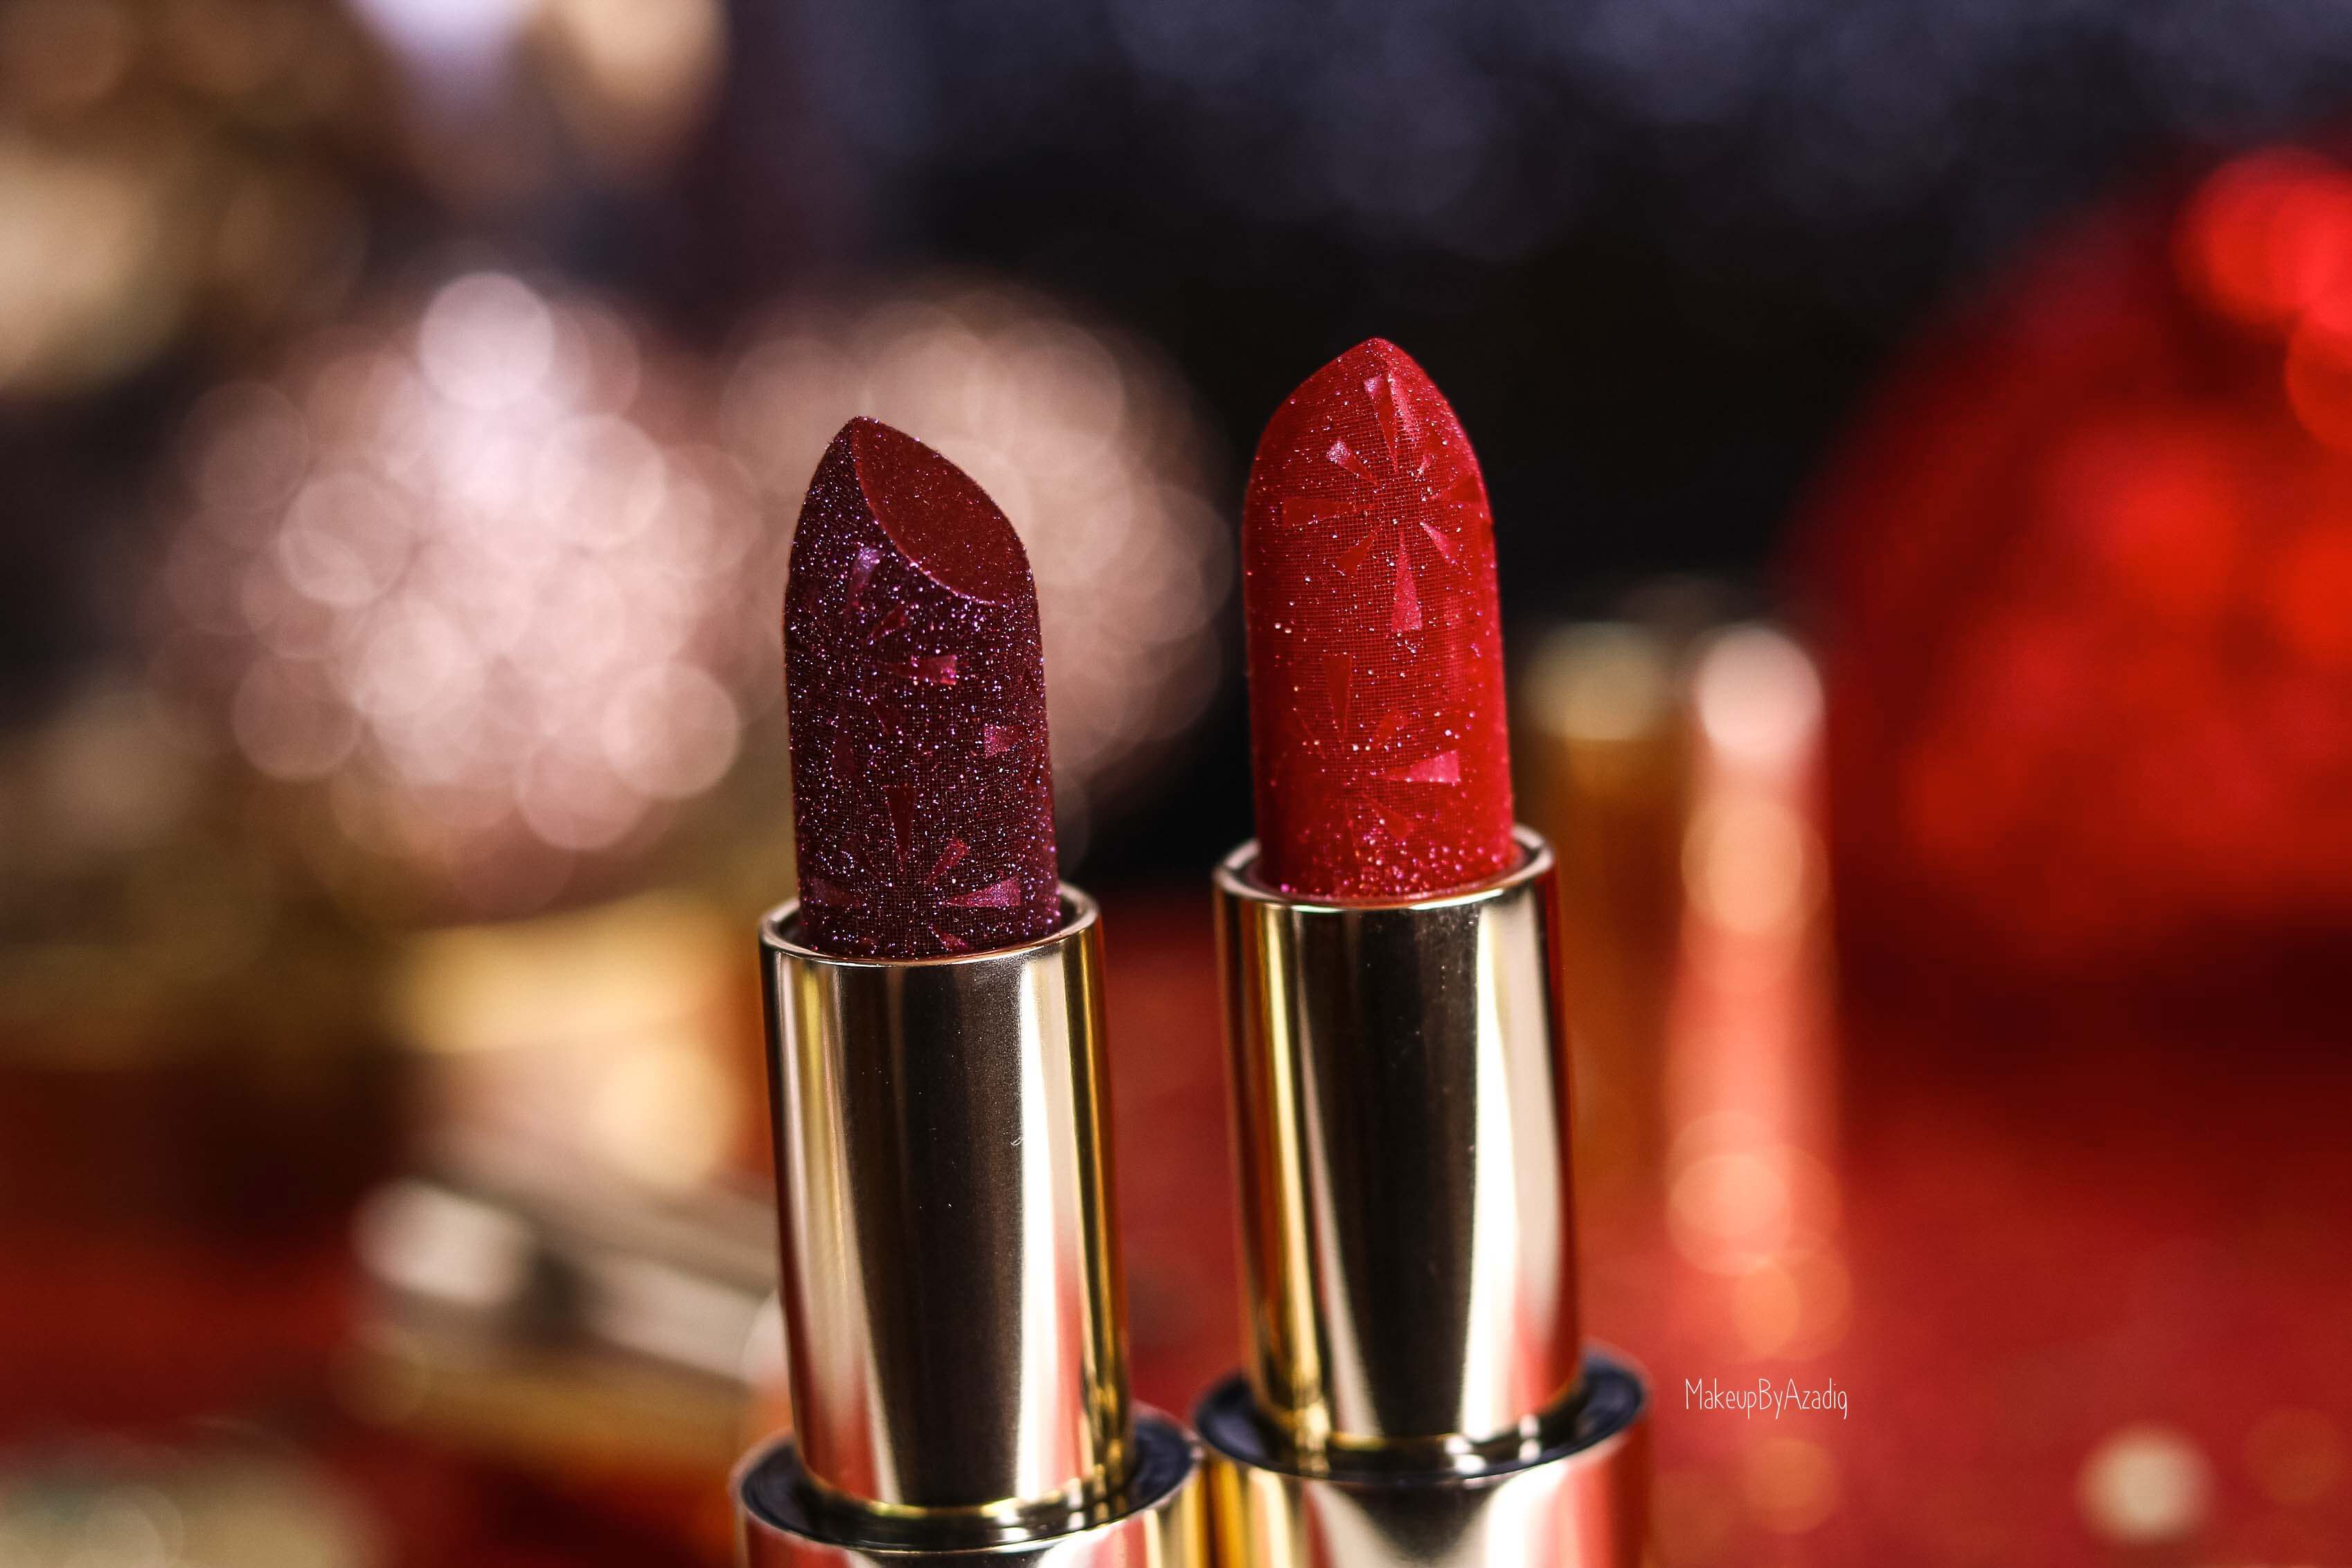 revue-collection-noel-kiko-milano-troyes-magical-holiday-rouge-levres-fard-paupieres-makeupbyazadig-avis-prix-swatch-paillete-2019-christmas